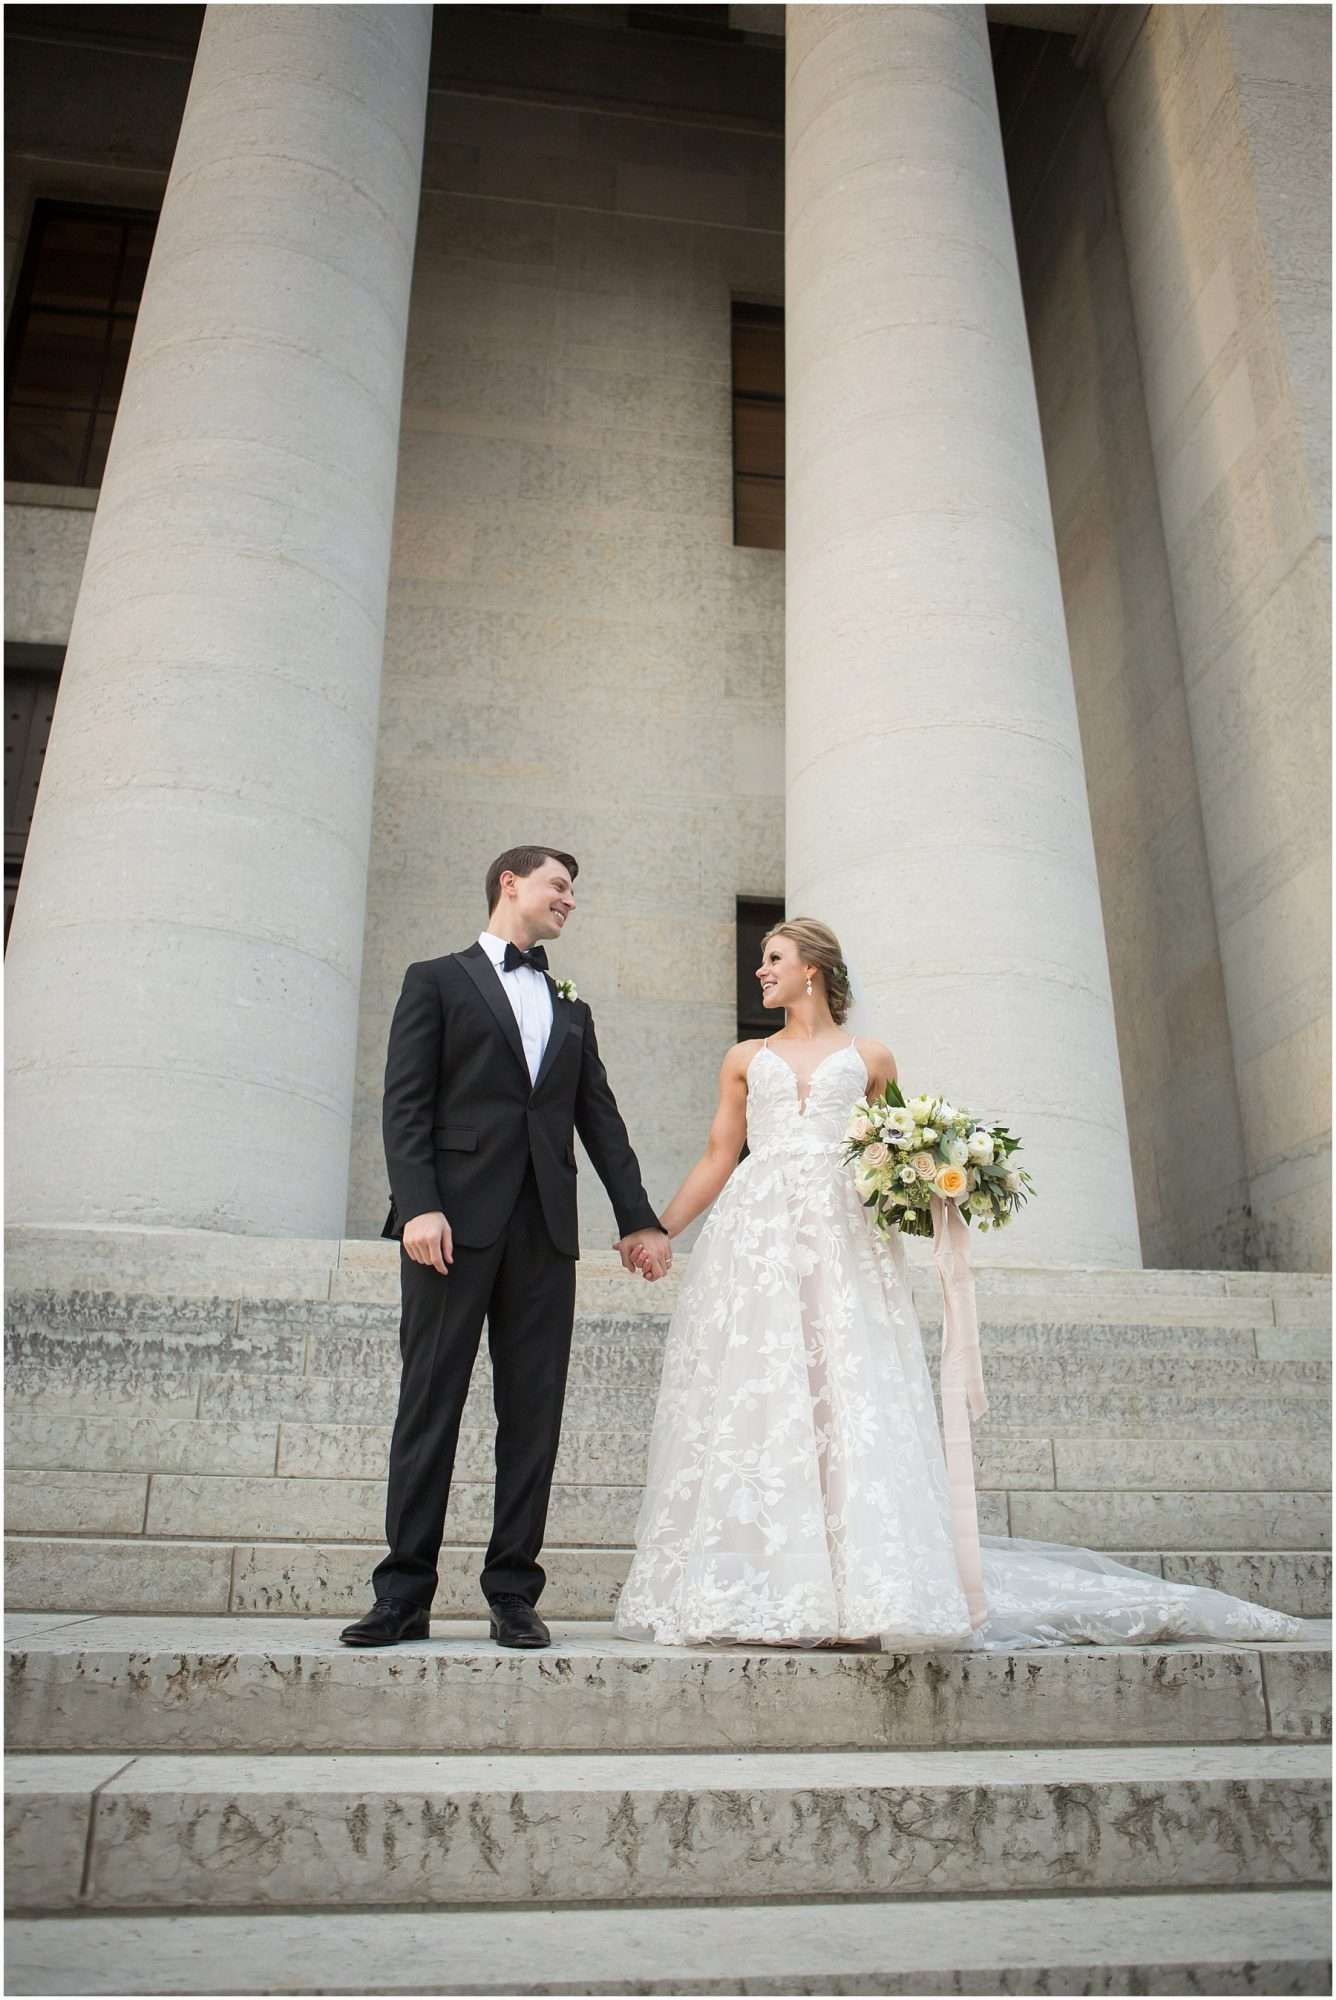 Wedding at the Ohio Statehouse | Columbus Ohio Weddings 146